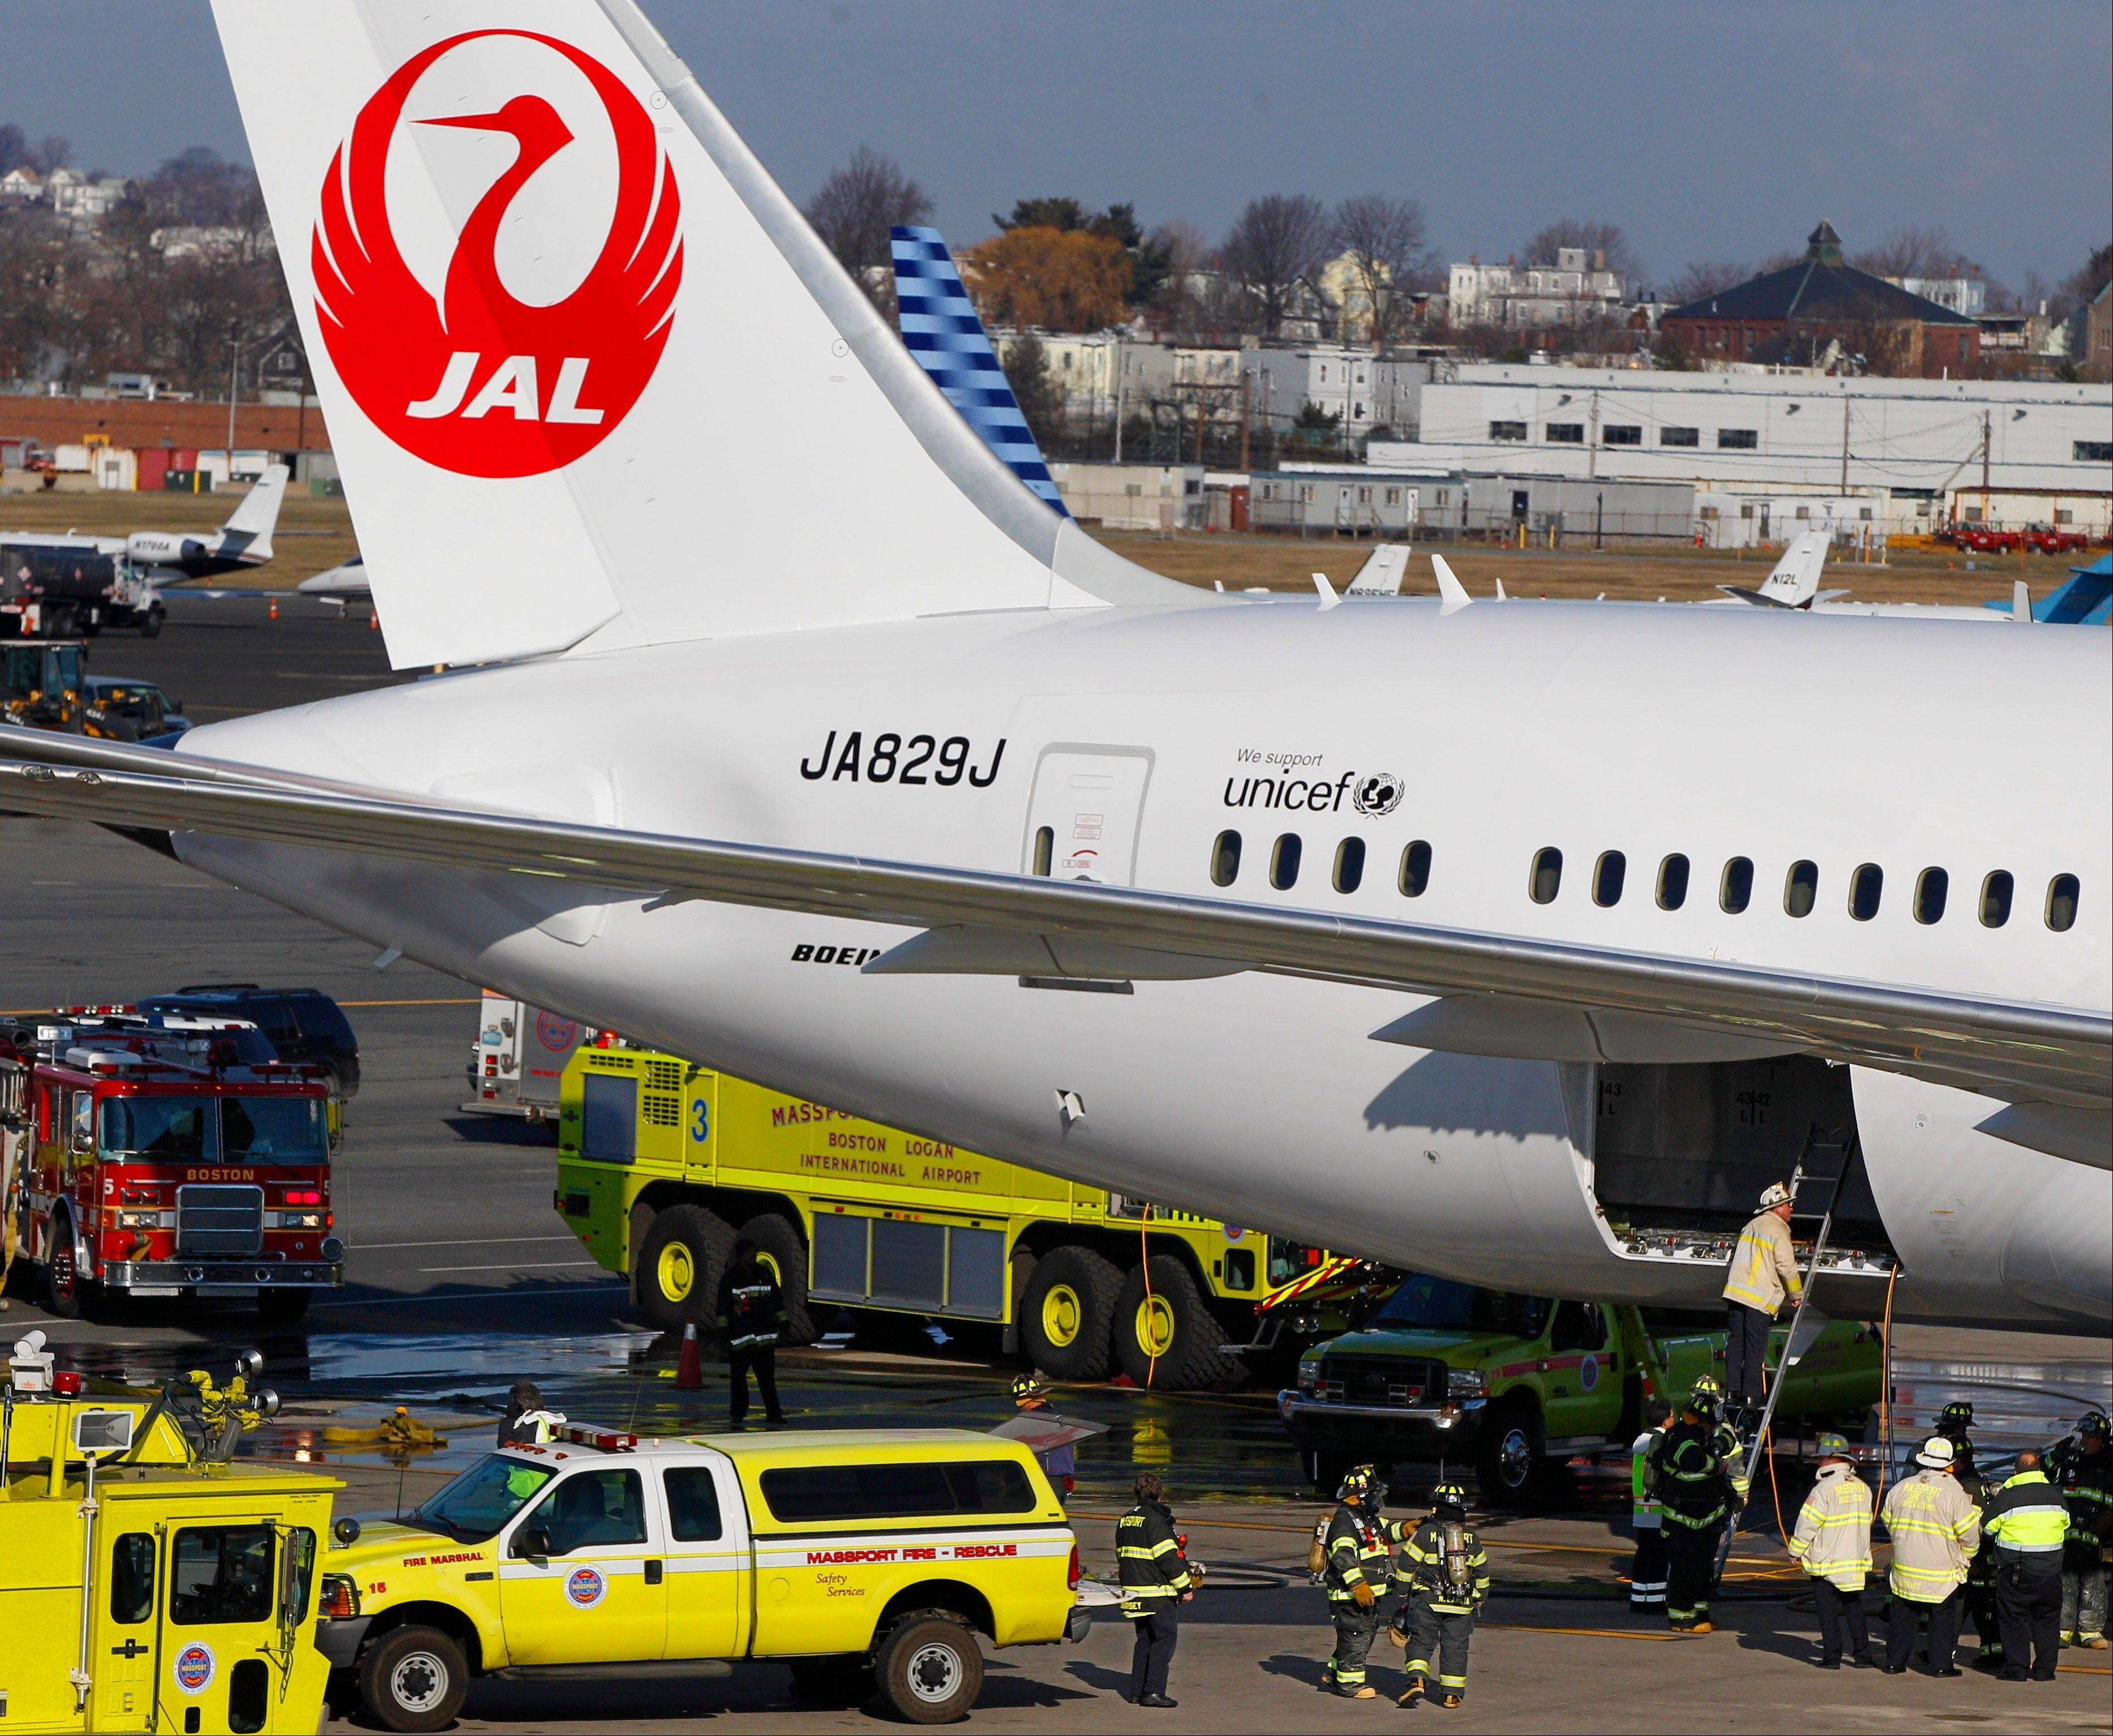 A Japan Airlines Boeing 787 Dreamliner jet aircraft is surrounded by emergency vehicles while parked at a terminal E gate at Logan International Airport in Boston as a fire chief looks into the cargo hold Monday.